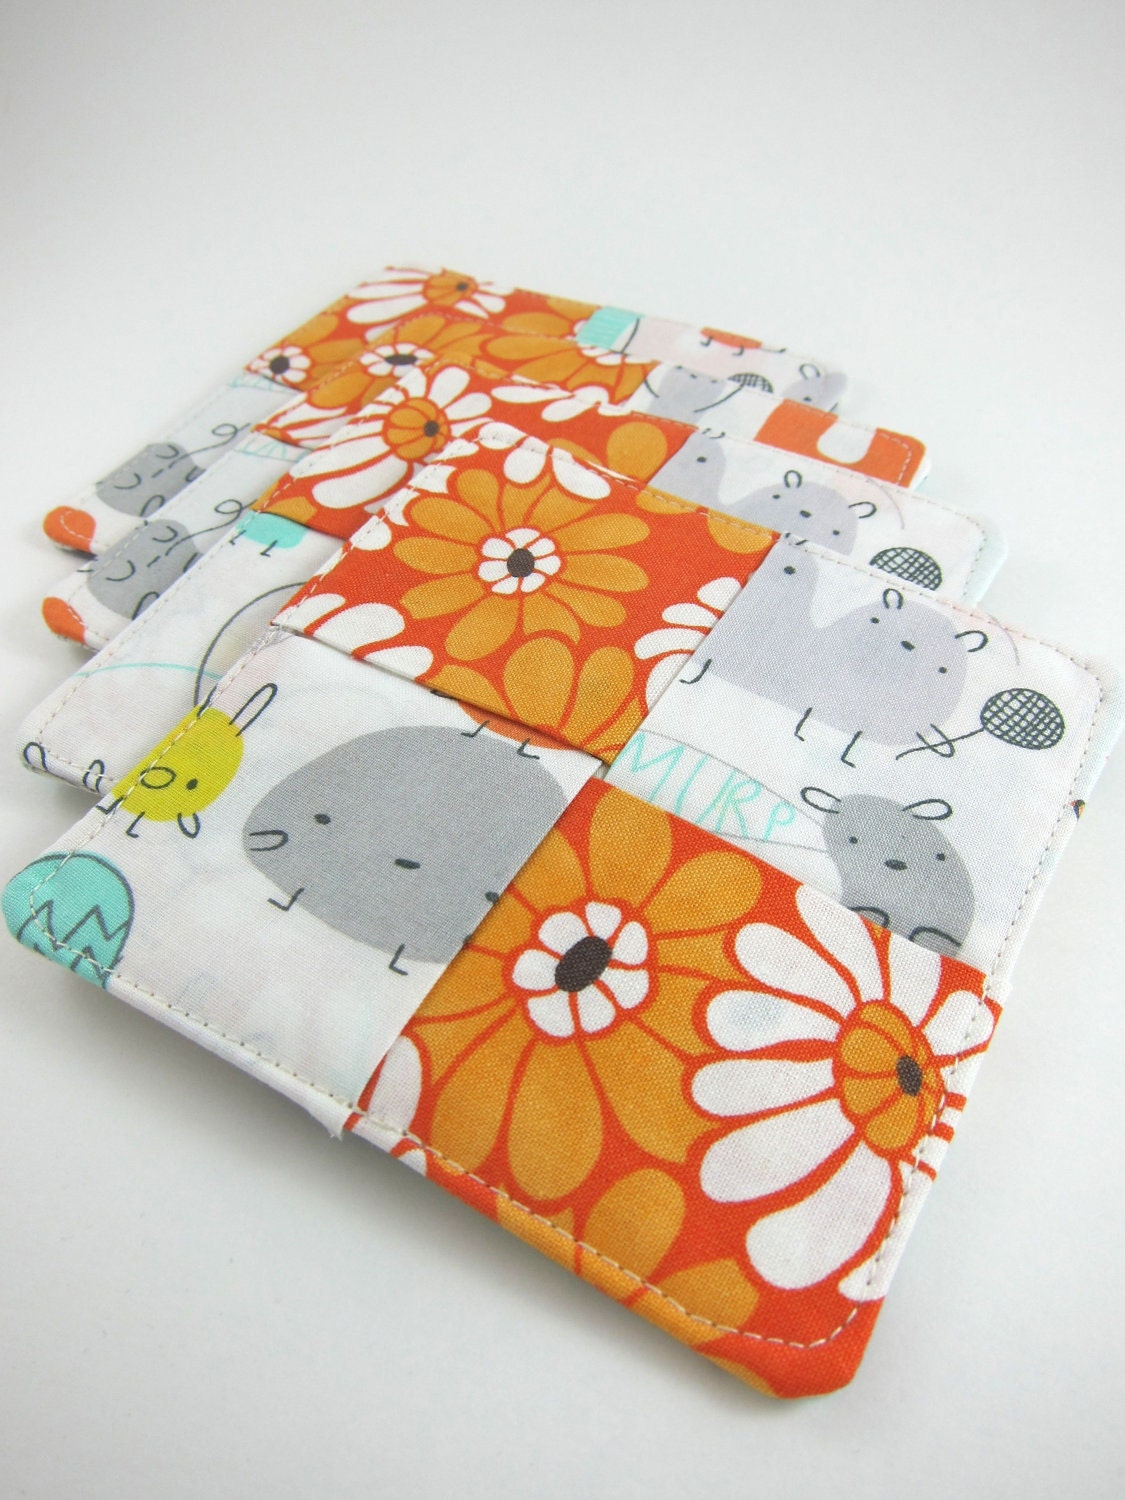 Housewarming GIft Fabric Coasters Set of 4 - Reversible with Storage Bag - Cute Monsters and Orange Flowers